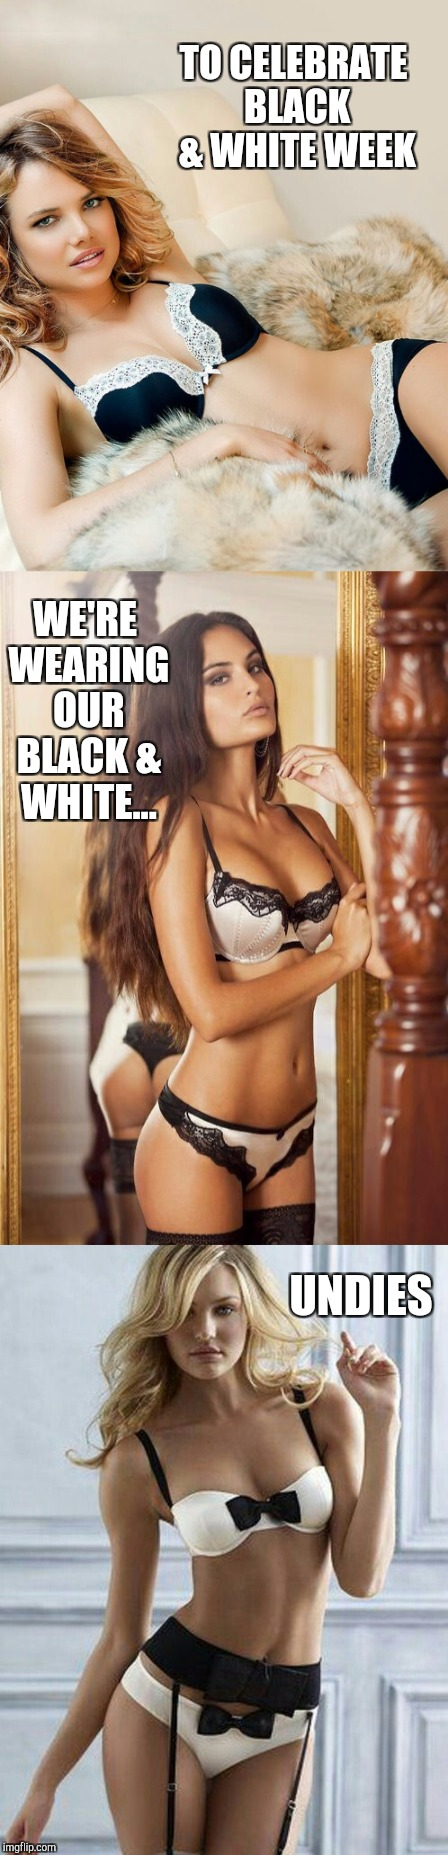 Now this is how Black & White Week should be celebrated! B&W Meme Week, a Pipe_Picasso event | TO CELEBRATE BLACK & WHITE WEEK WE'RE WEARING OUR BLACK & WHITE... UNDIES | image tagged in black and white,black and white week,jbmemegeek,sexy women,lingerie,panties | made w/ Imgflip meme maker